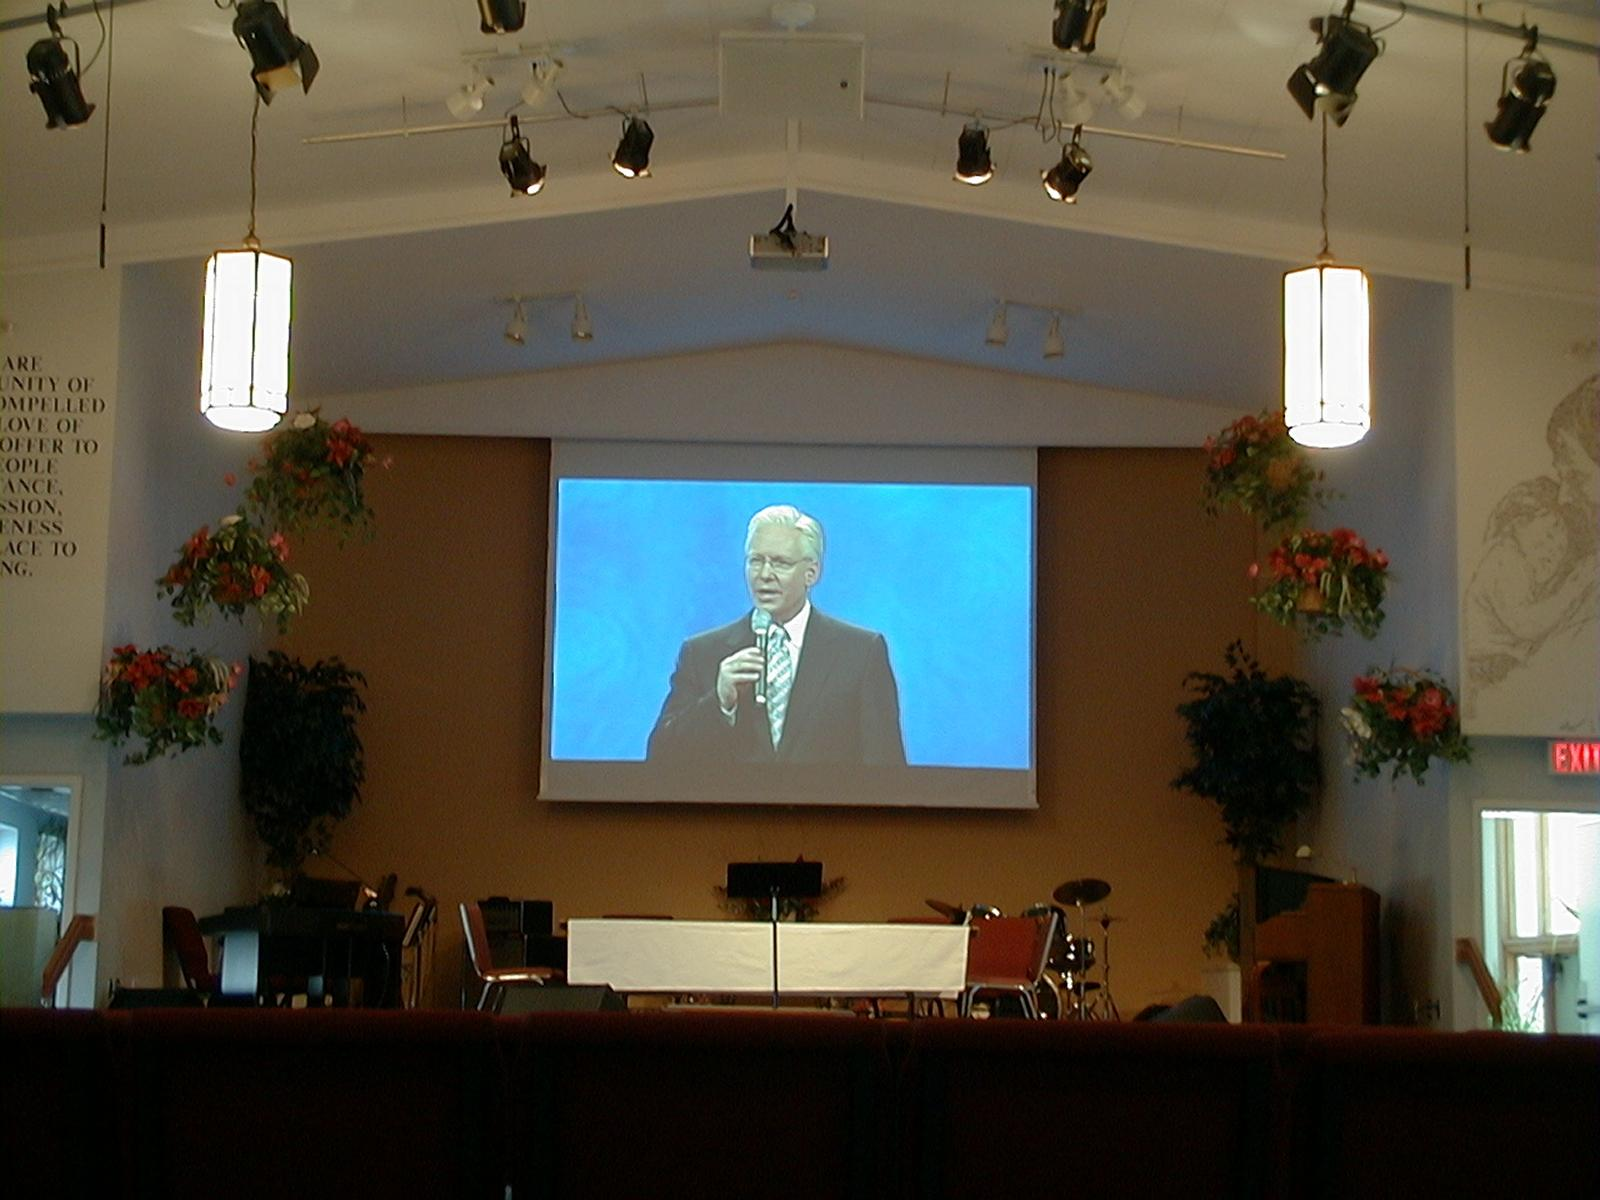 Church Video System